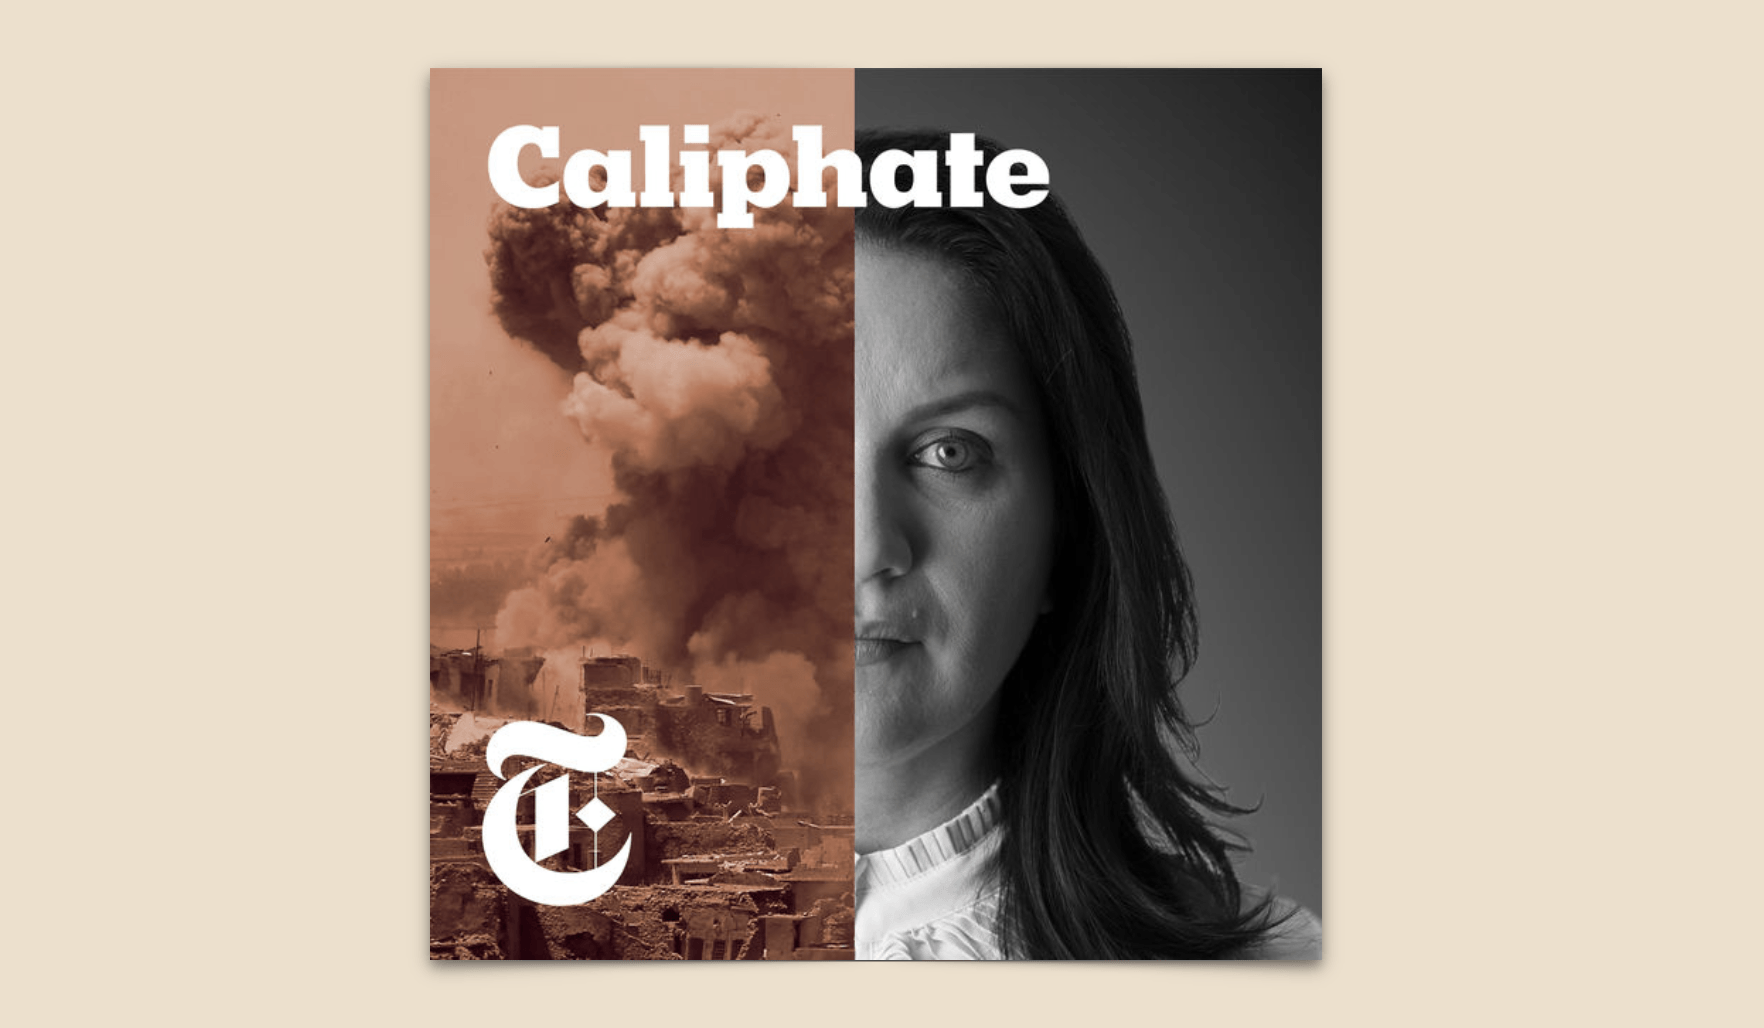 Caliphate Podcast Review